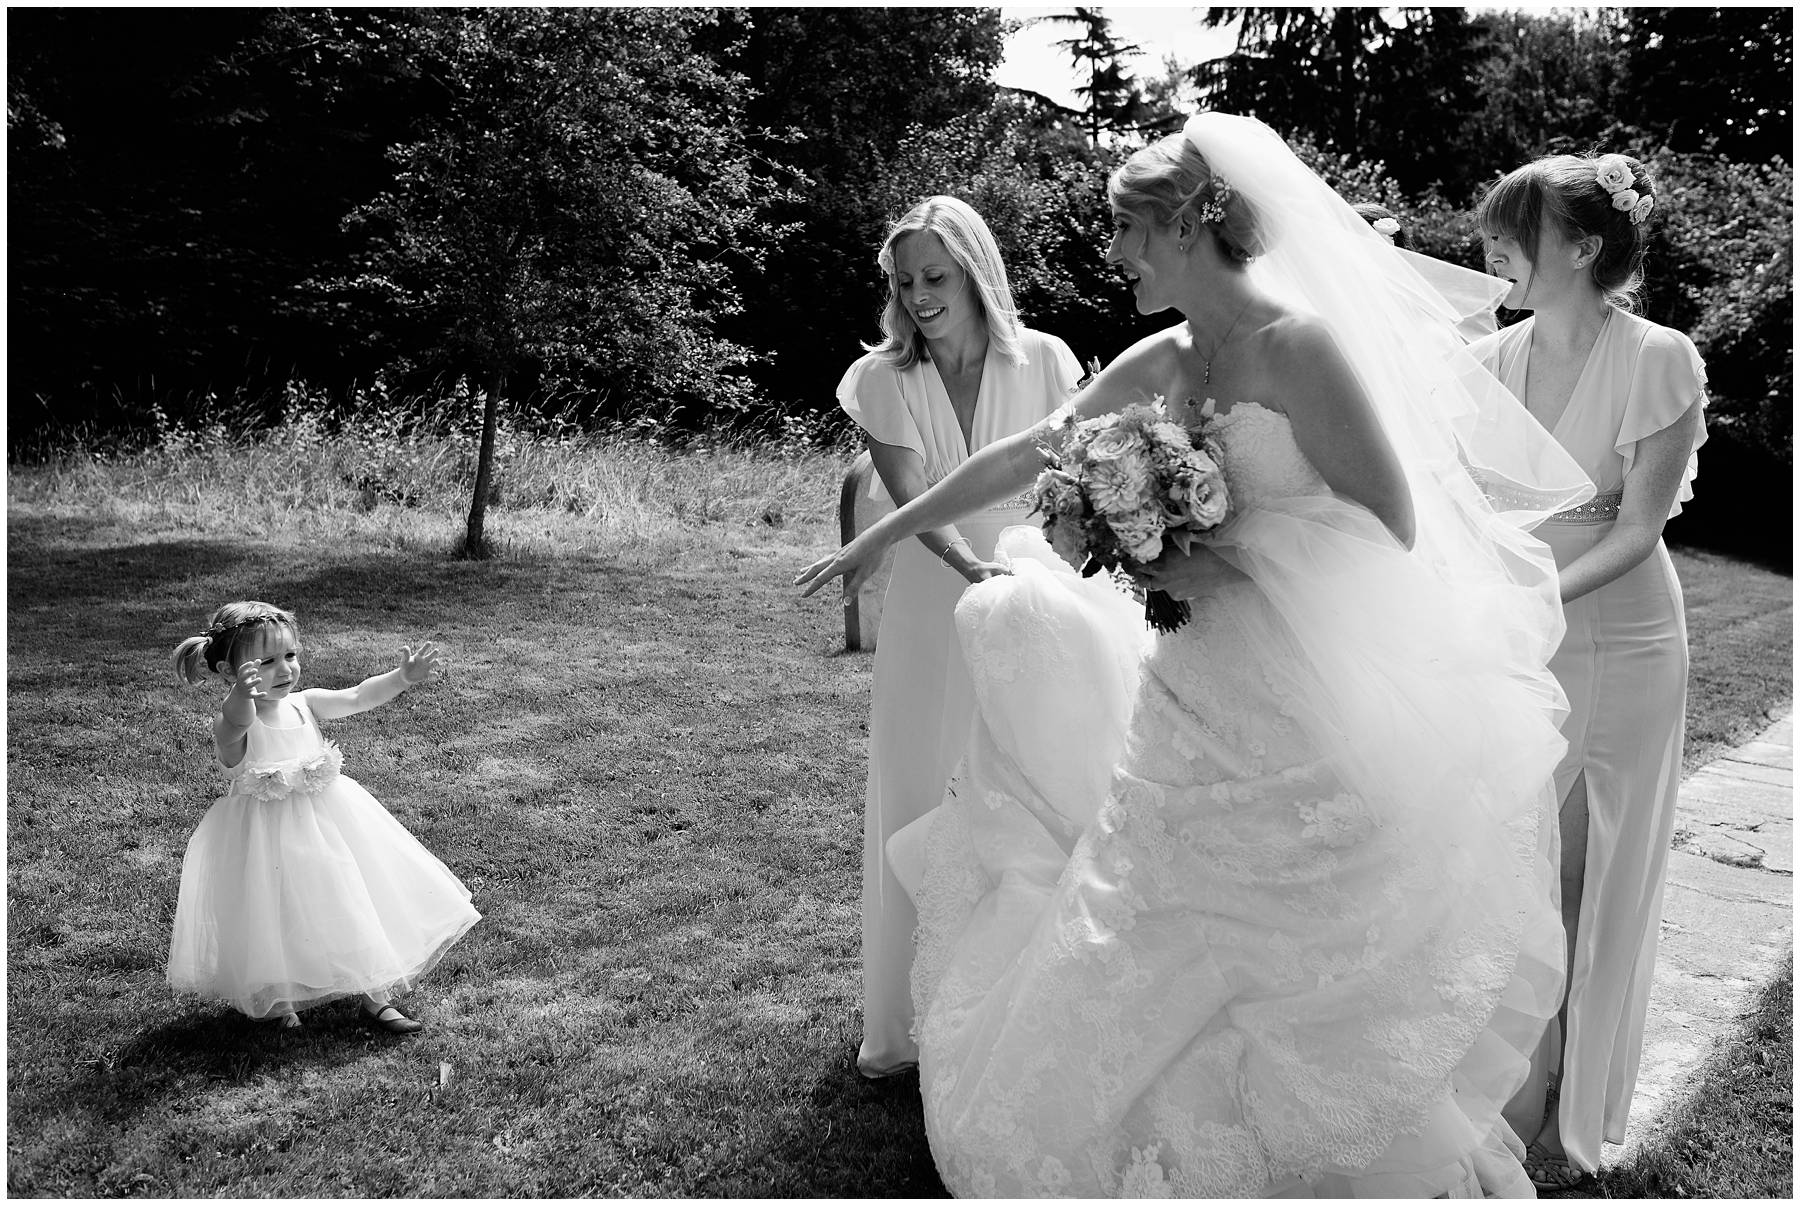 Reportage wedding photography in Somerset